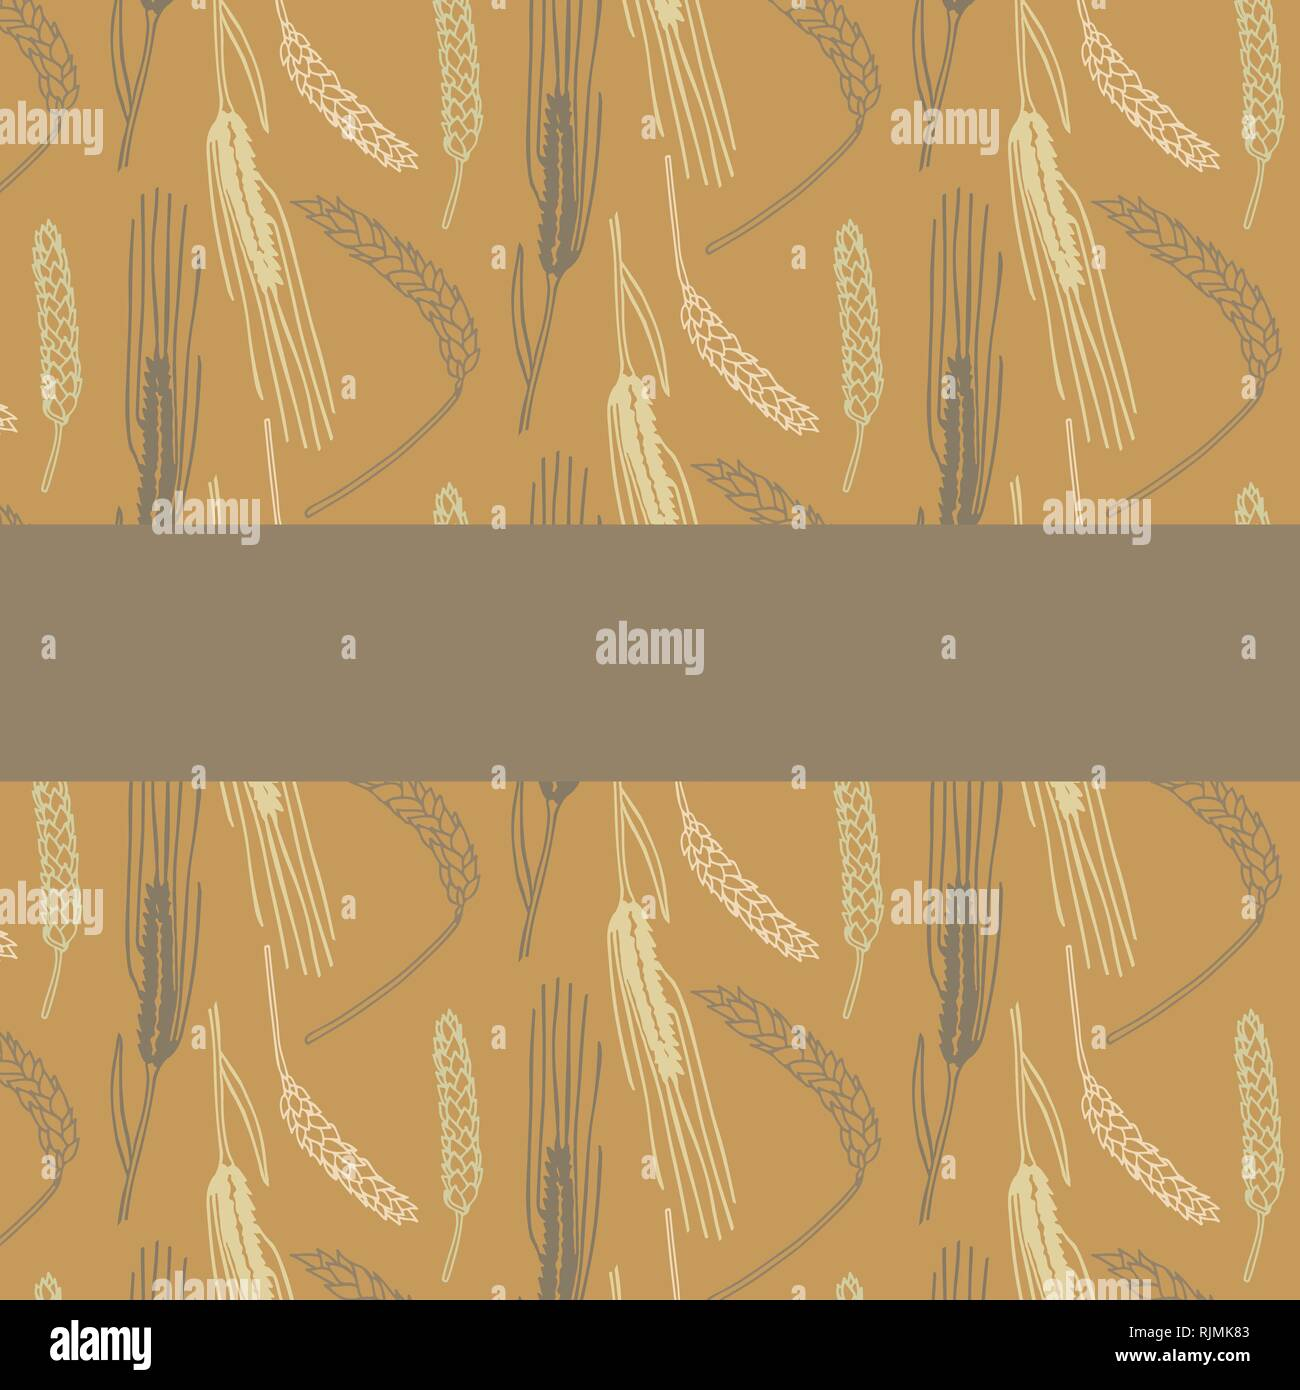 Hand drawn spring wheat vector pattern card template in brown and orange colors palette - Stock Vector